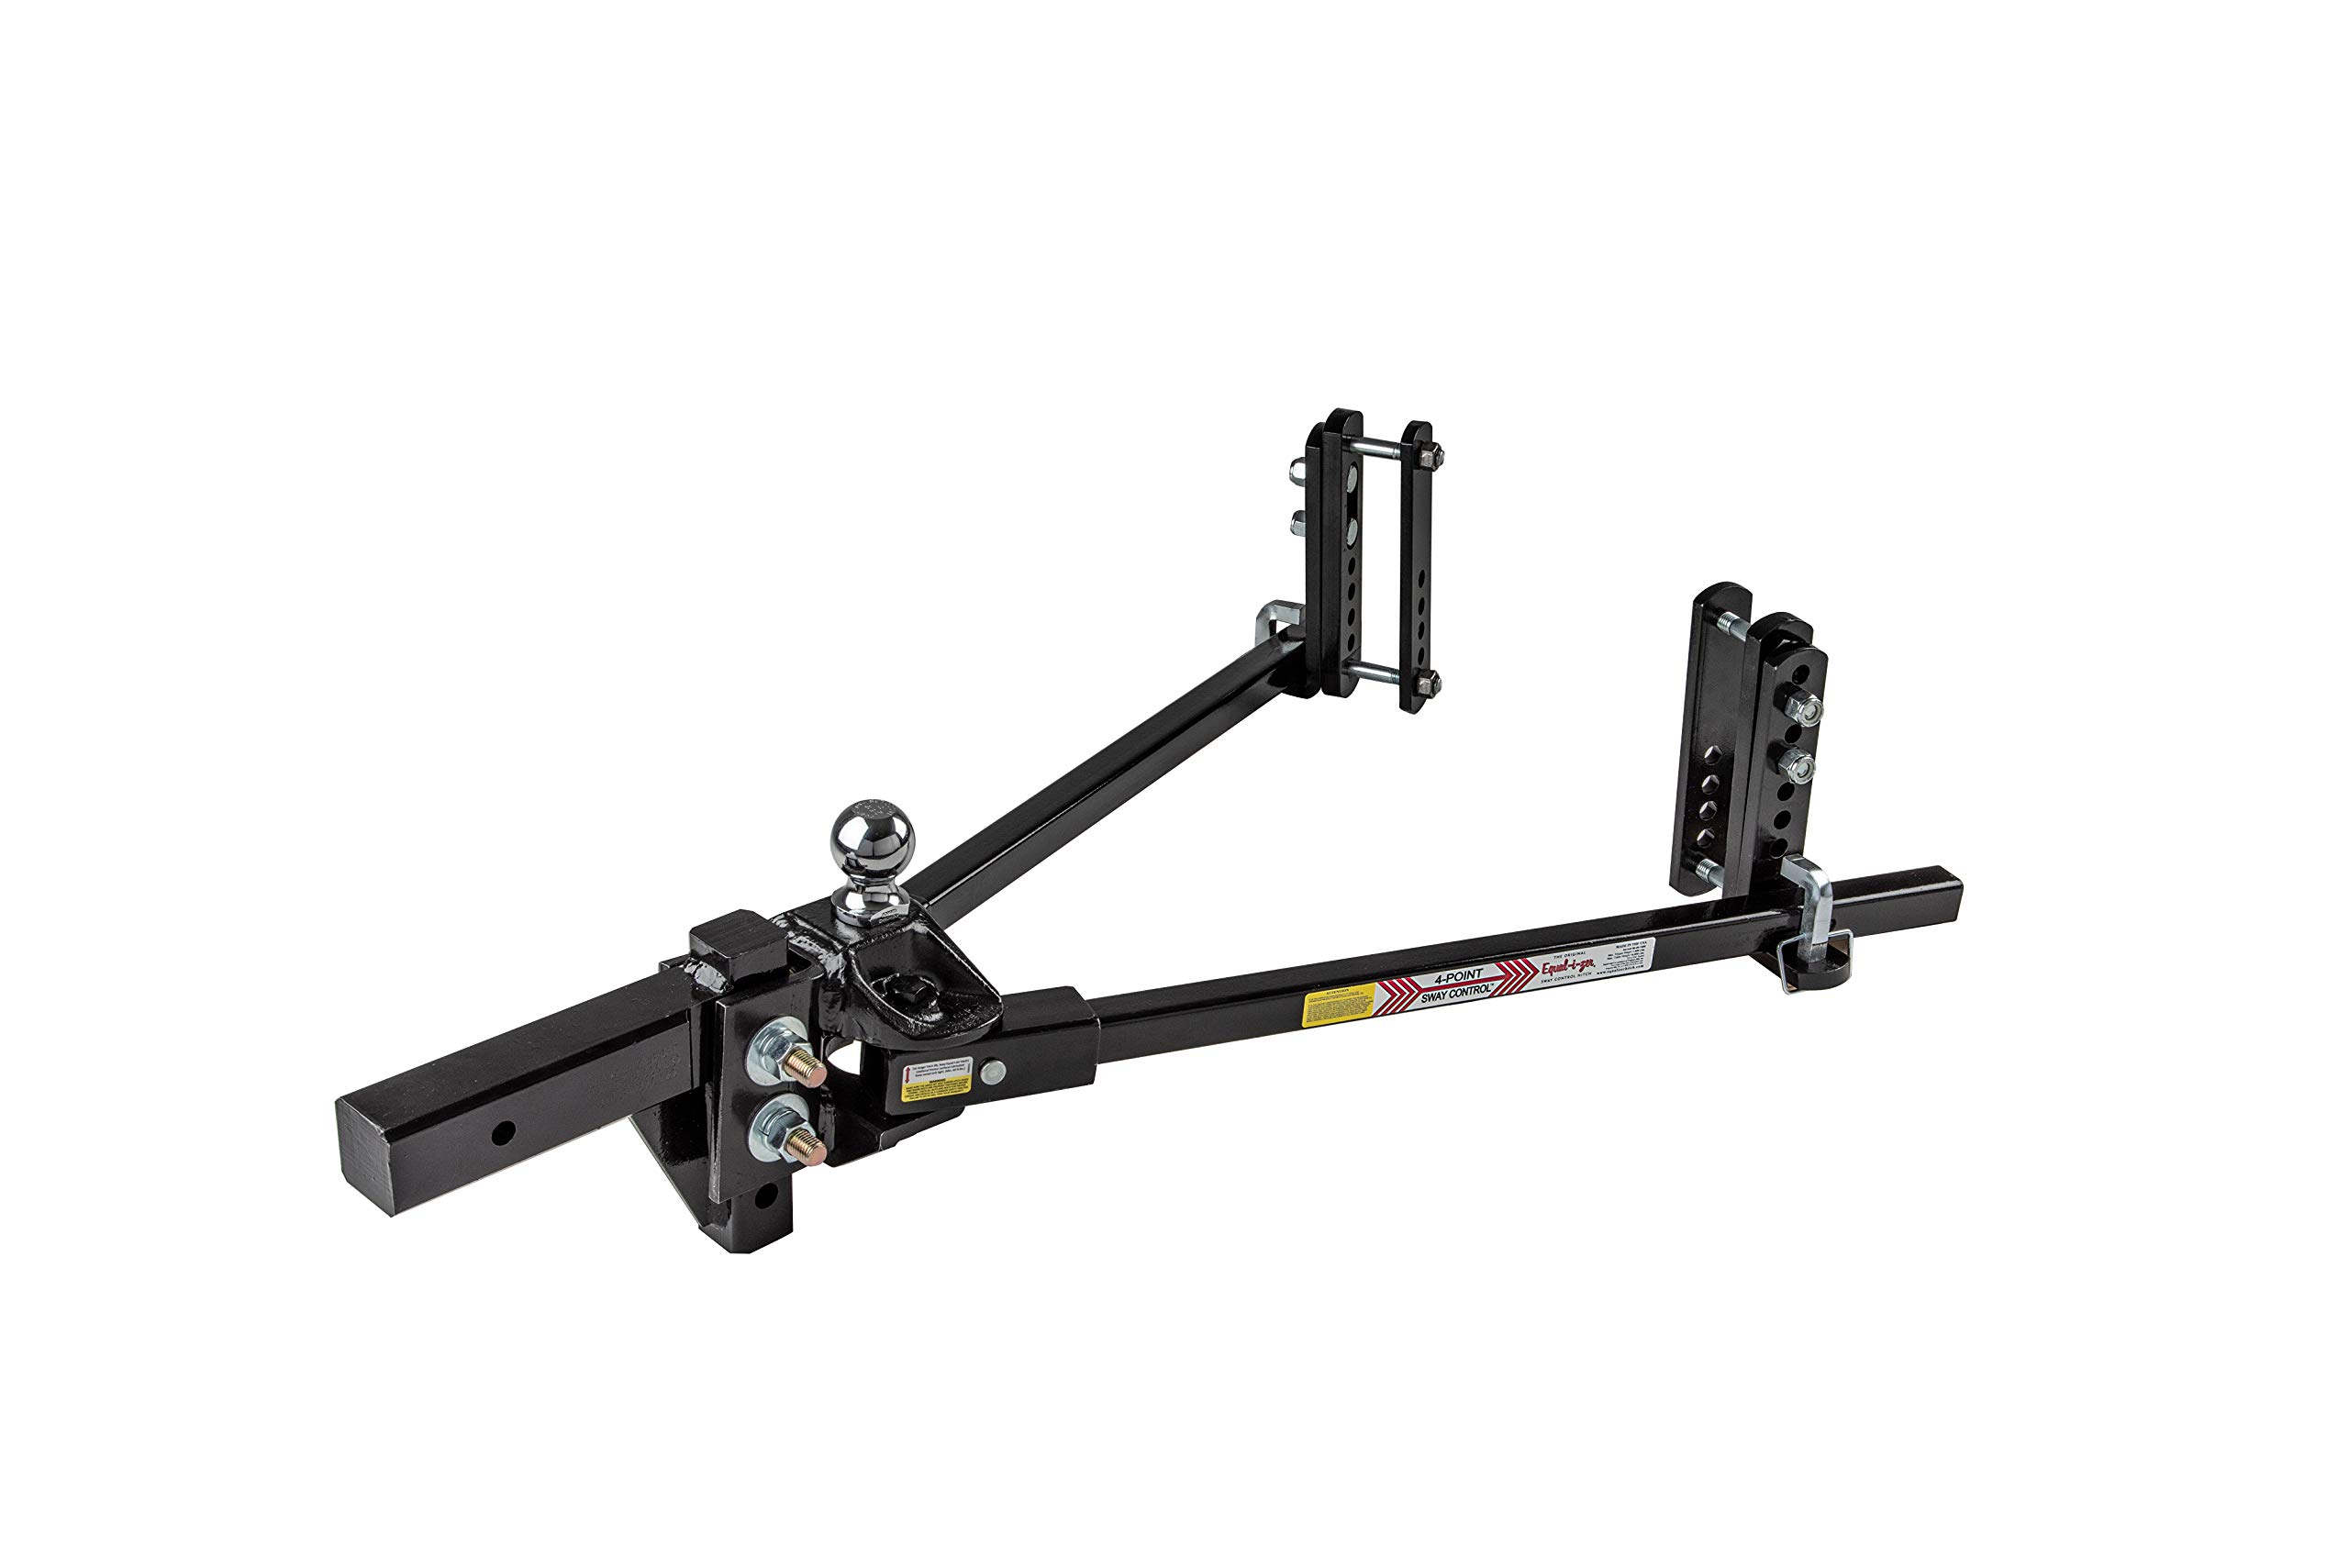 Equal-i-zer 4-Point Sway Control Hitch, 90-00-1600, 16,000 Lbs Trailer Weight Rating, 1,600 Lbs Tongue Weight Rating, Weight Distribution Kit Includes Standard Hitch Shank, Ball NOT Included by Equal-i-zer